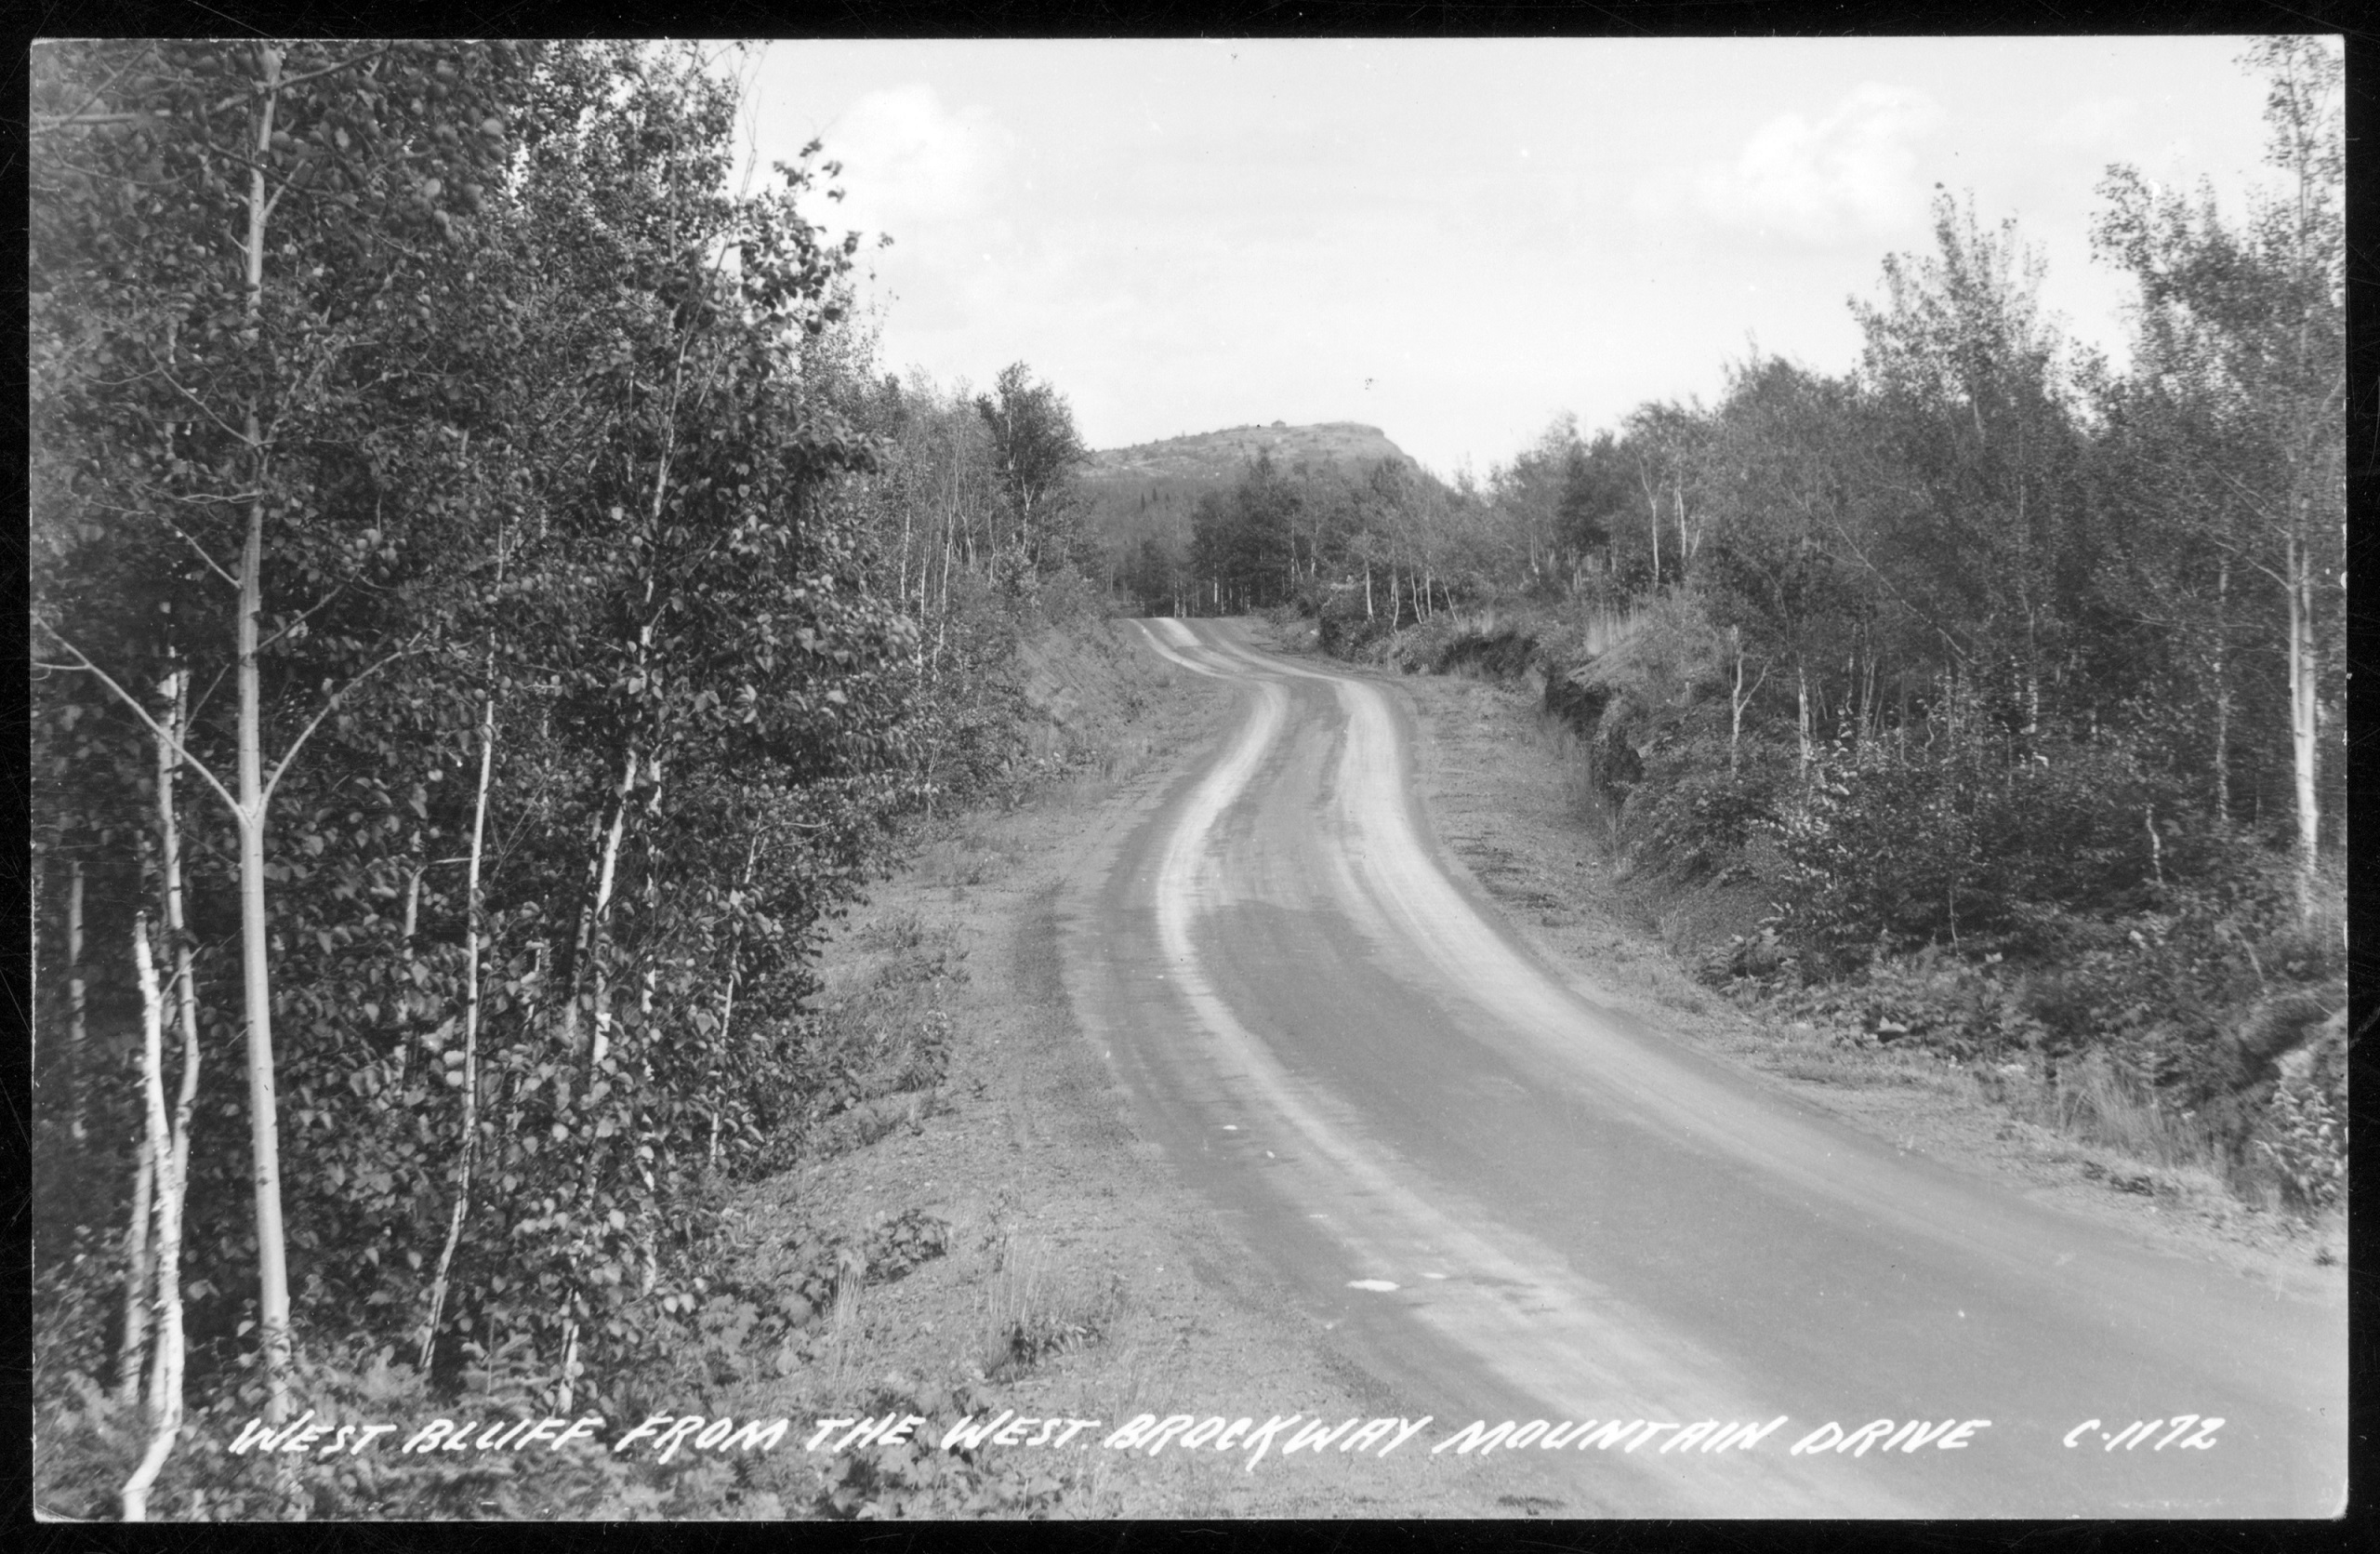 Image of road leading up to forested hill